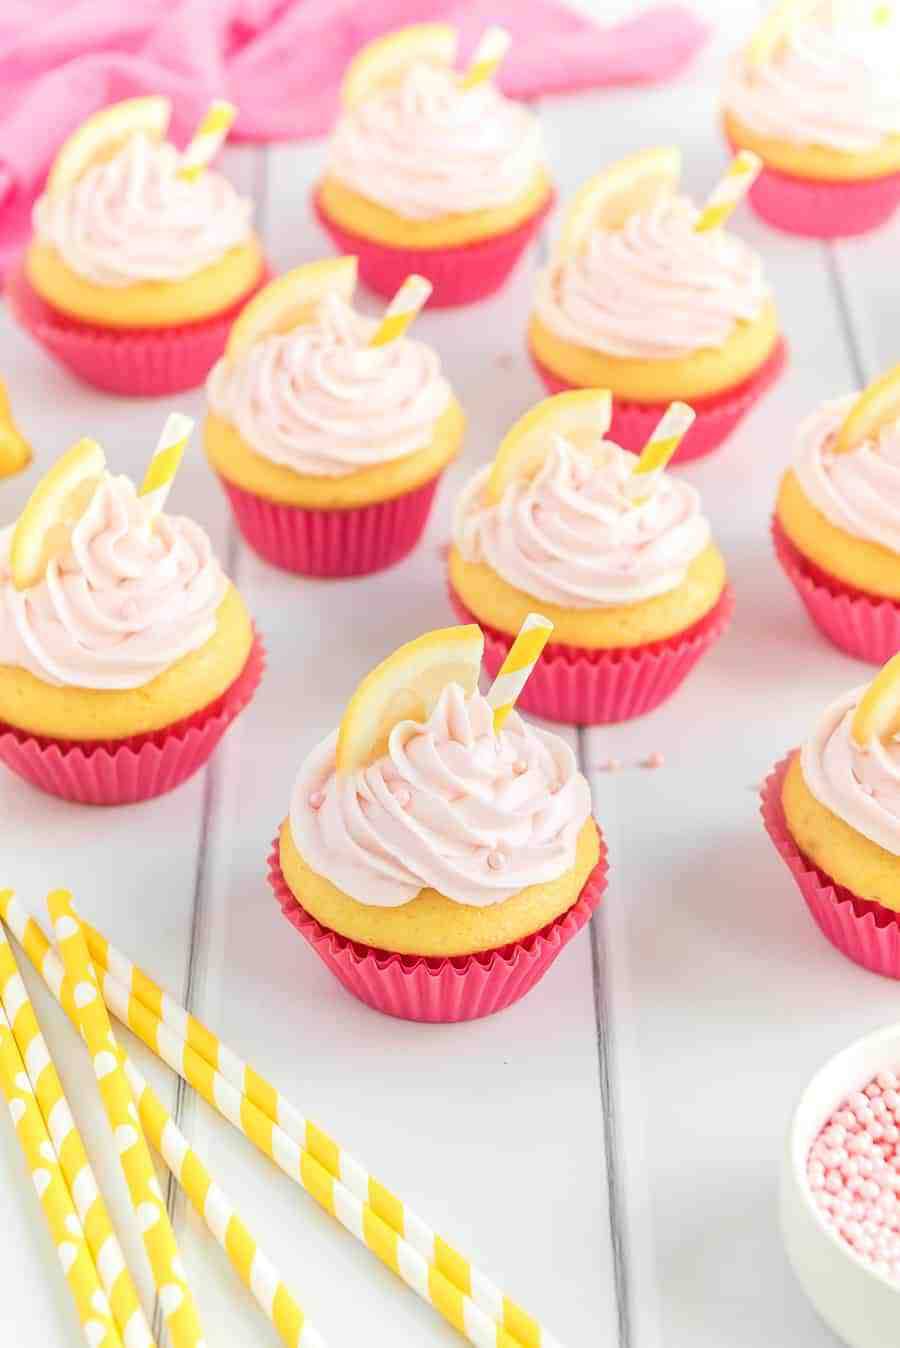 Not only are Pink Lemonade Cupcakes absolutely adorable--they're also the fluffiest tart and refreshing bite of lemony cake and frosting, perfect for any summer celebration.